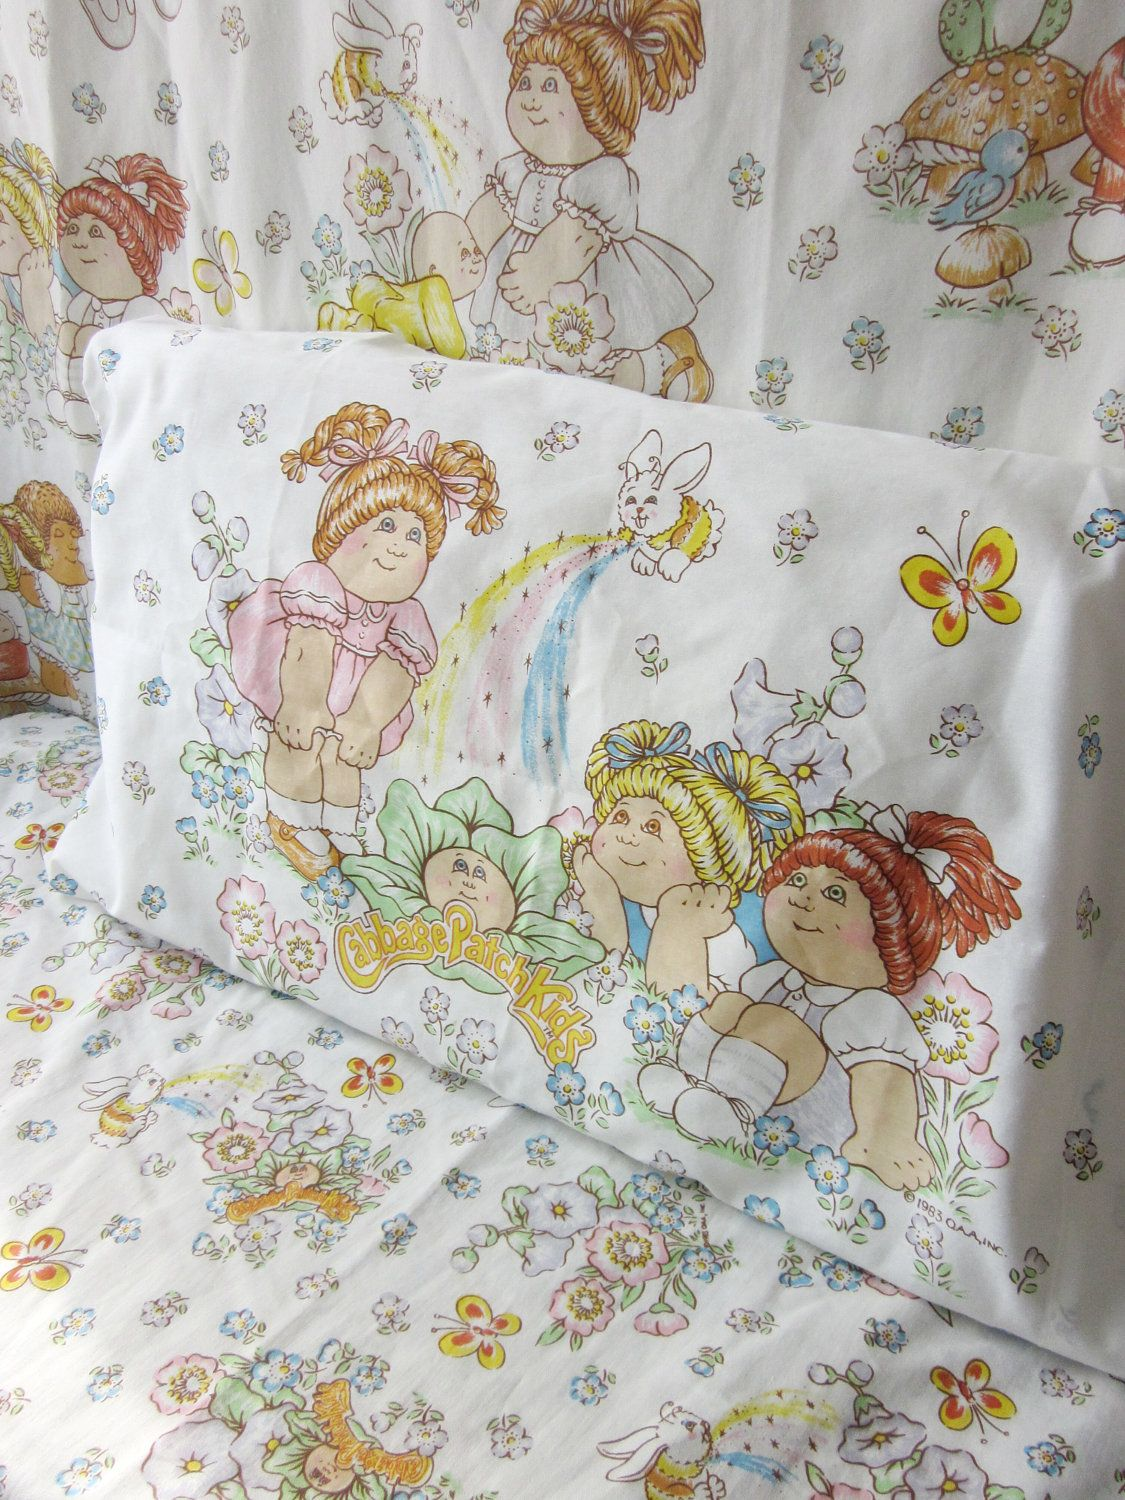 Vintage Cabbage Patch Kids Twin Sheet Set Cabbages